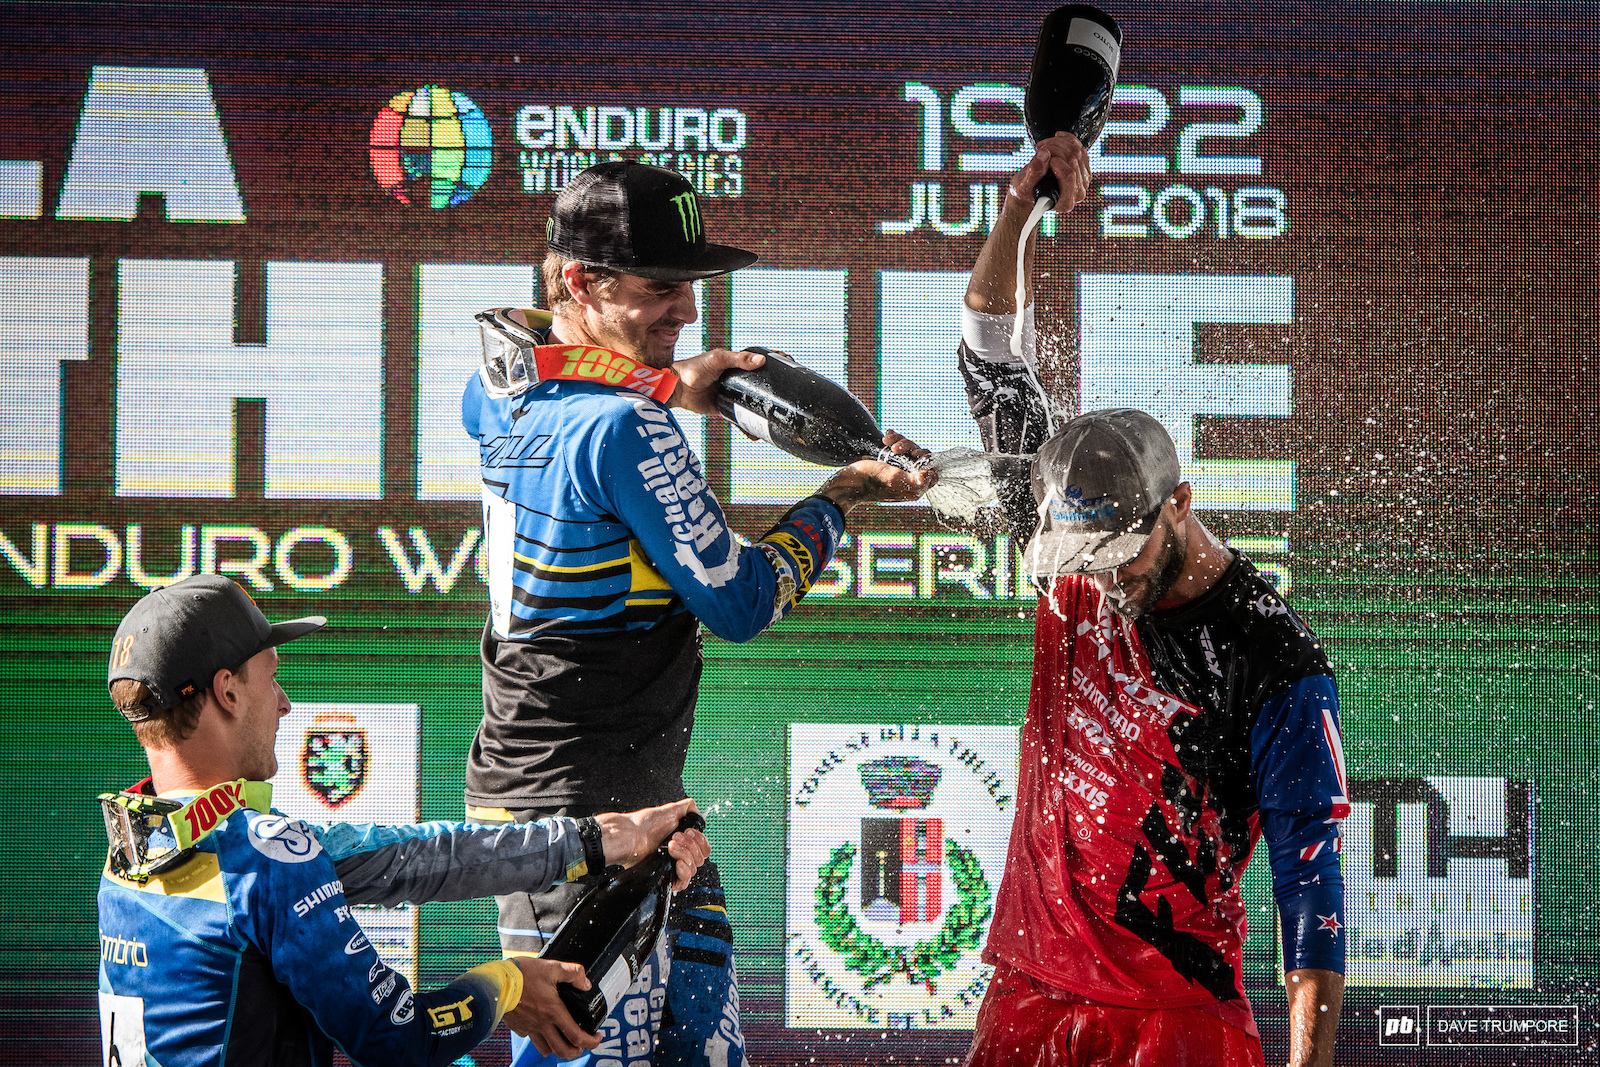 Podium showers to clean of the dust for Sam Hill Martin Maes and Eddie Masters